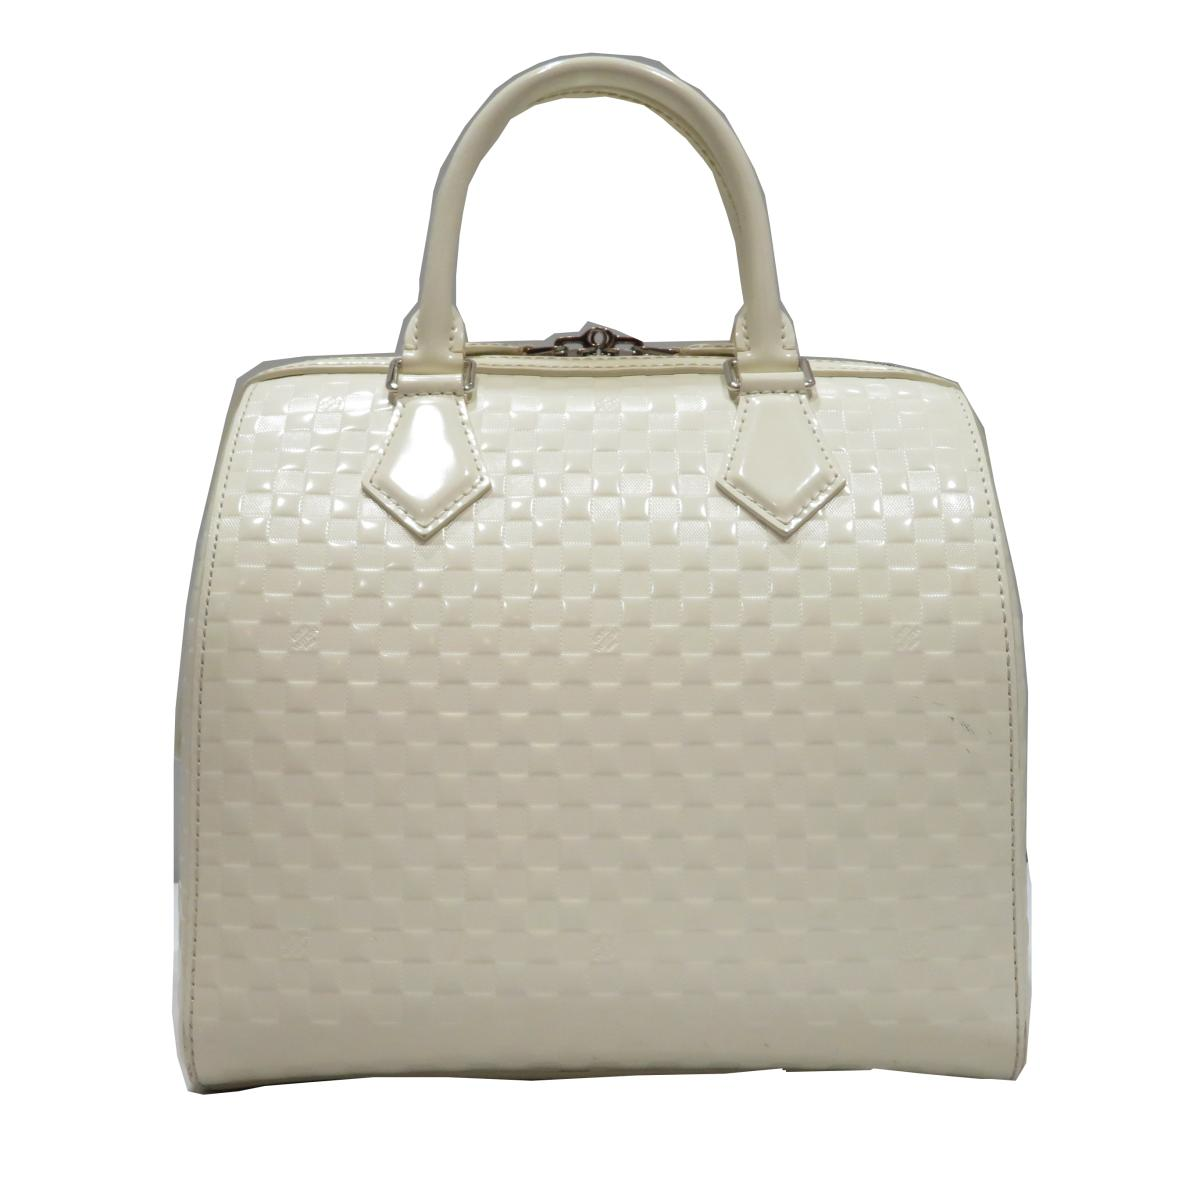 f5bfec74b0a2 (Free shipping) Auth LOUIS VUITTON Speedy Cube MM Boston Bag M48904 Damier  Facette White Used